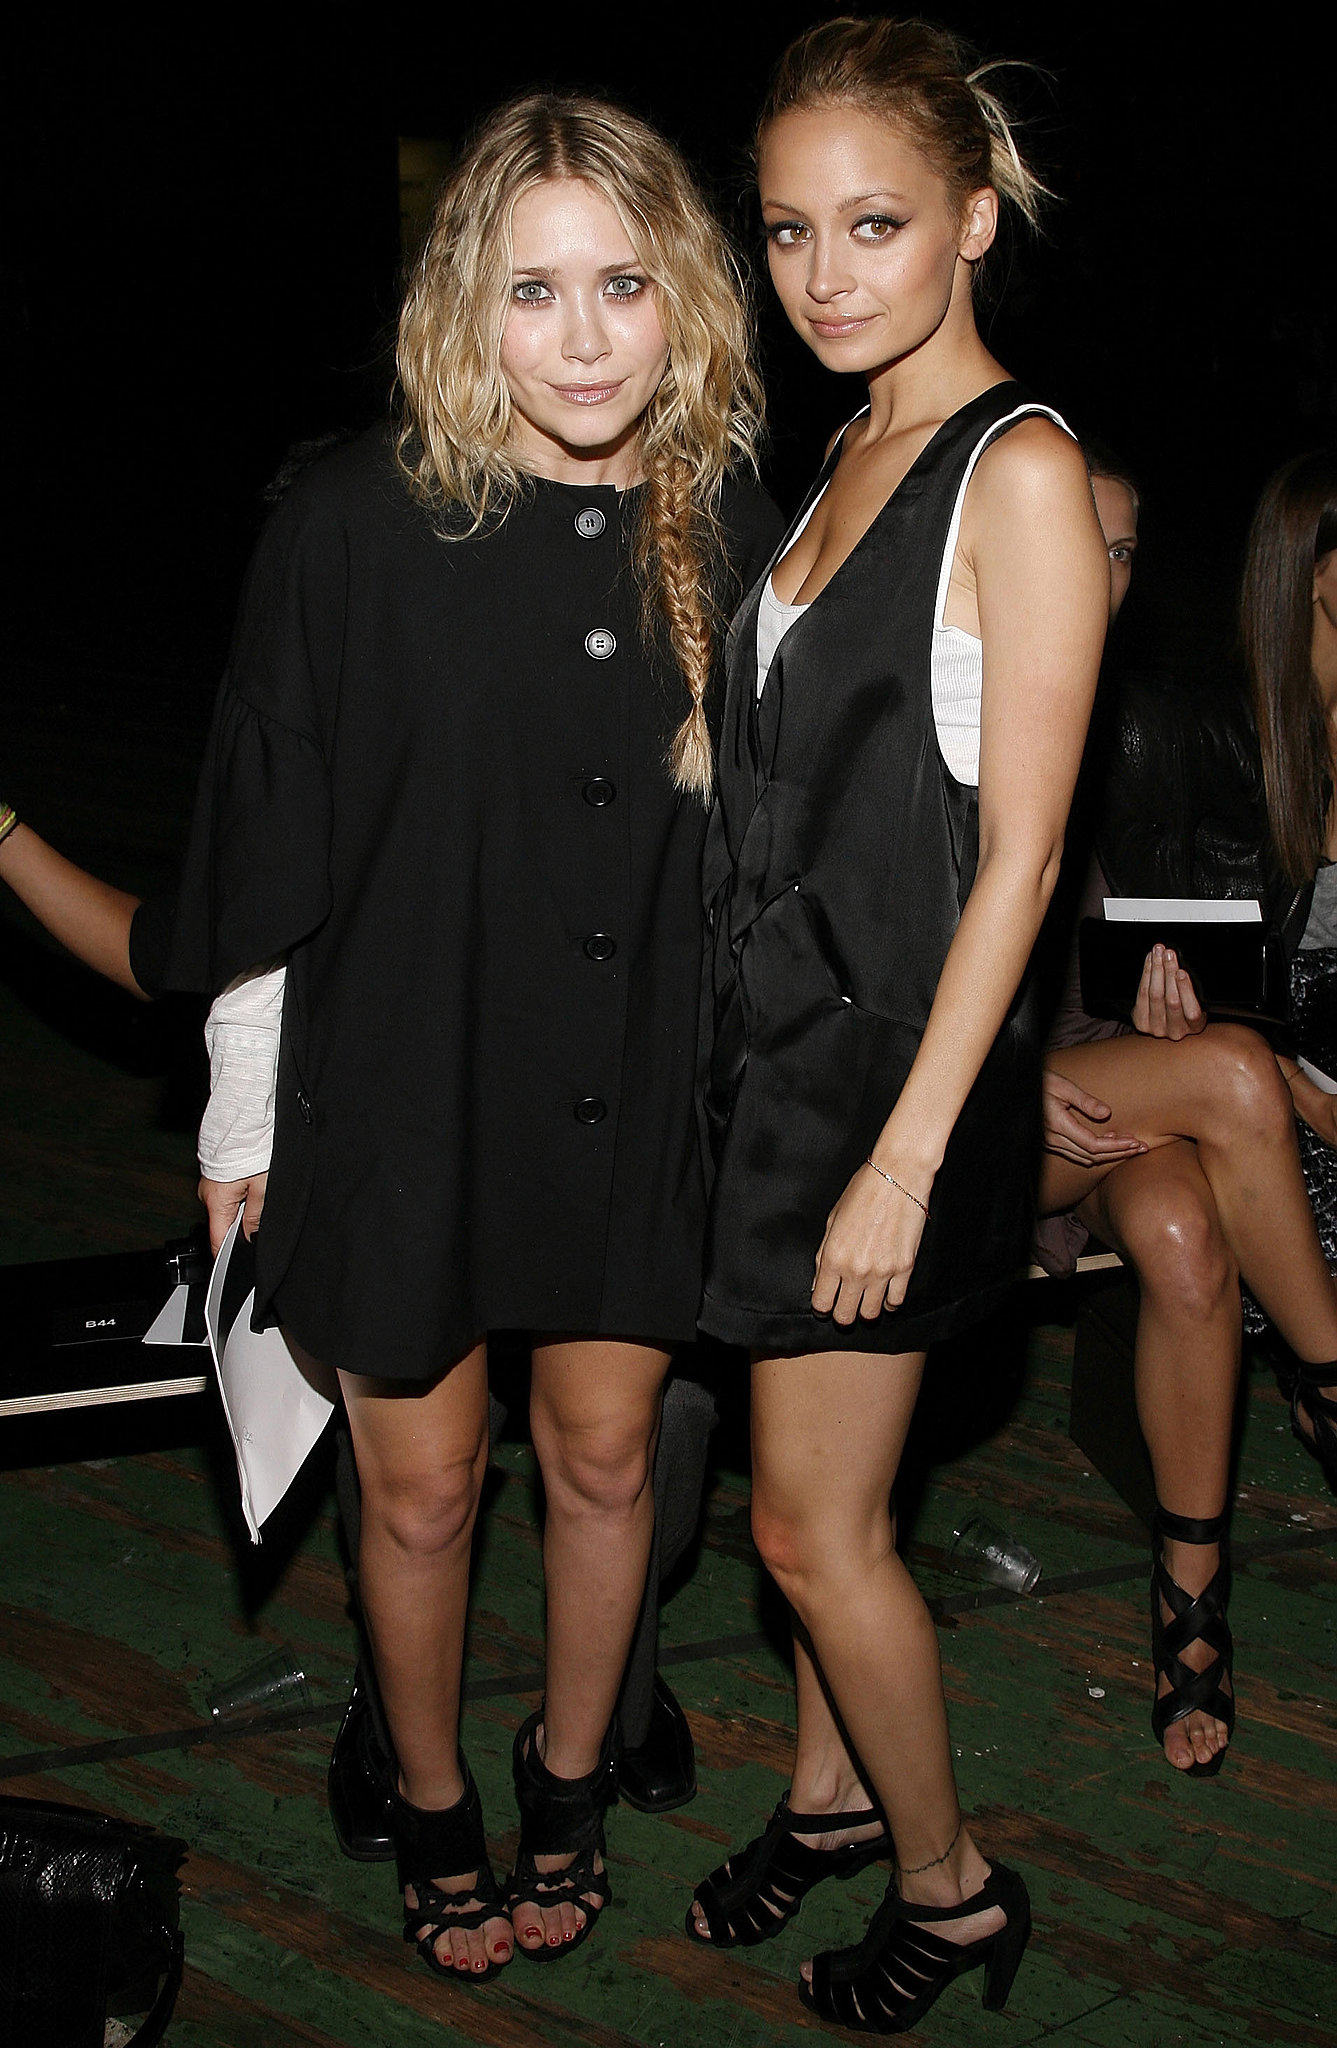 Mary-Kate Olsen and Nicole Richie linked up to sit front row at Proenza Schouler's February 2009 show.